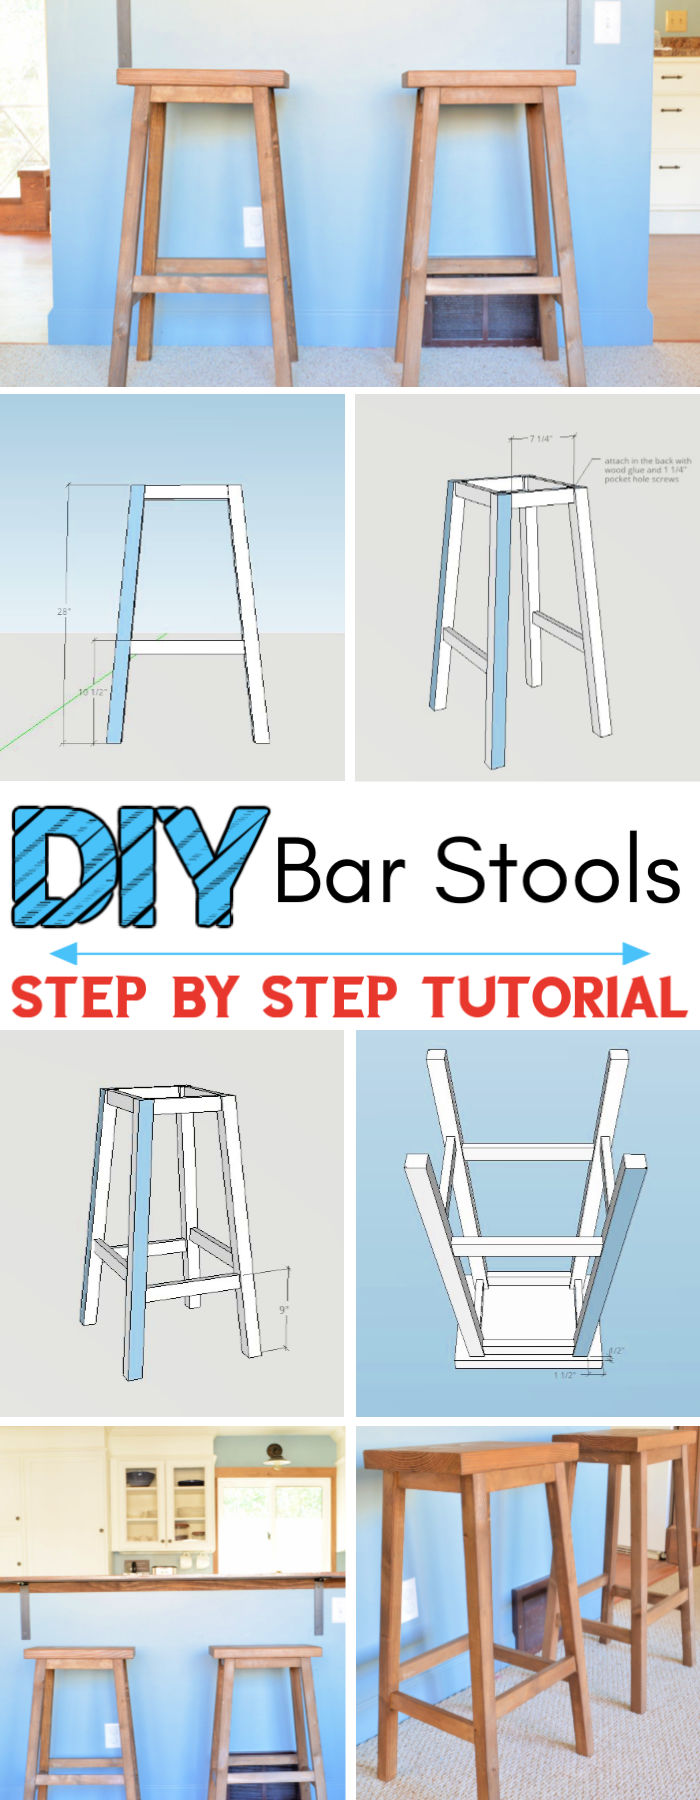 Simple DIY Bar Stools